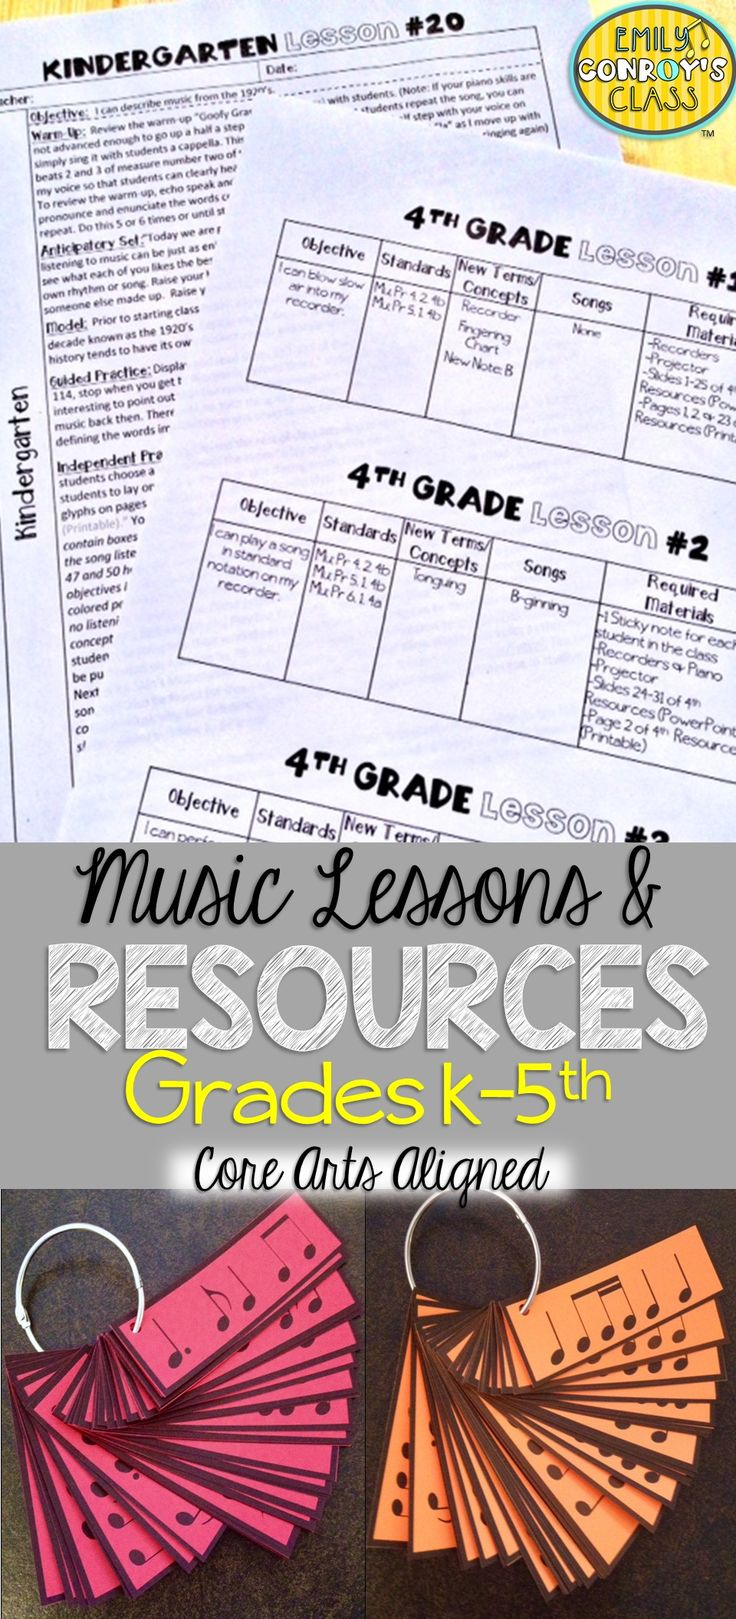 These elementary music lesson plans are aligned to the National Core Arts Standards! They are creative and concise and contain games, songs, posters, PowerPoint presentations, and other helpful music education resources for grades K-5. They also include notation and sound files for all of the songs mentioned in the lessons!